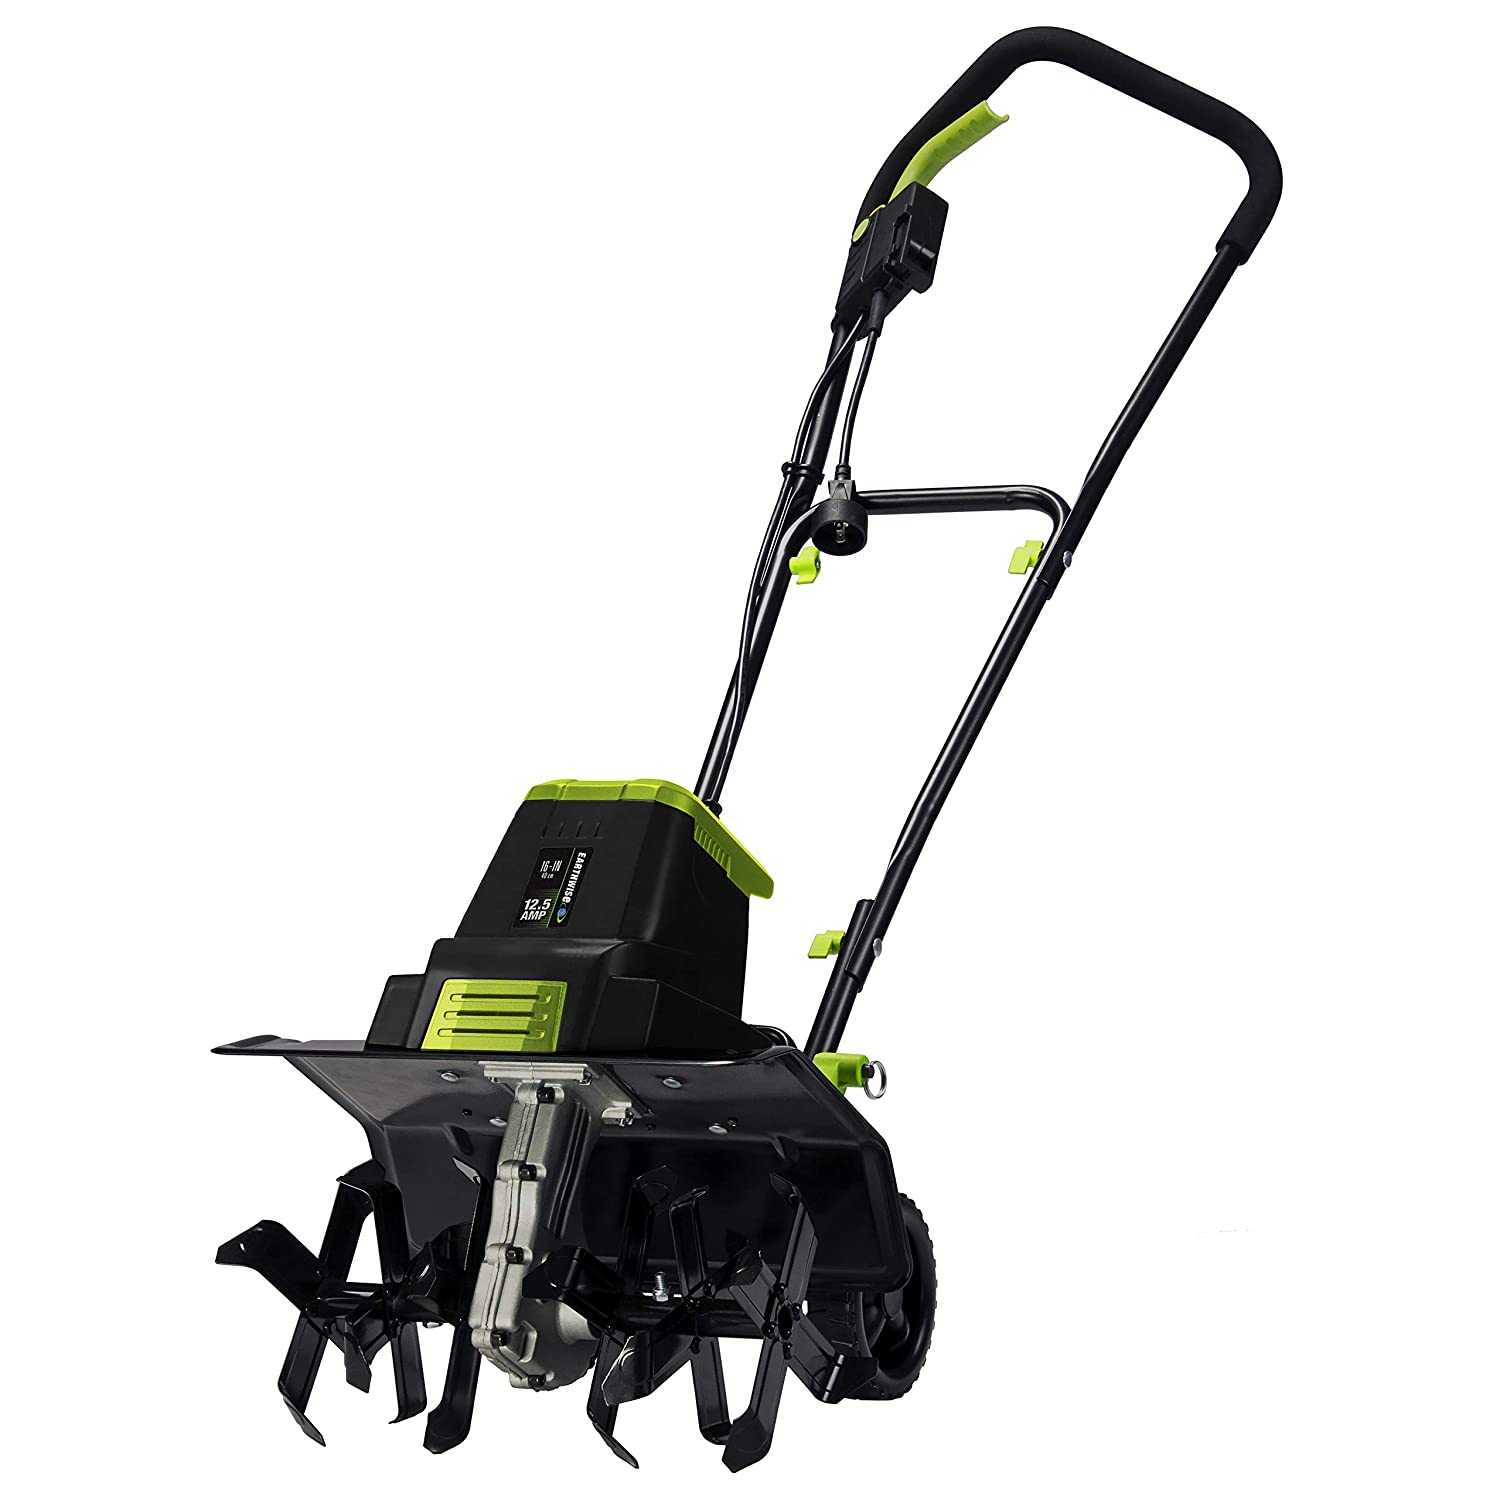 Earthwise TC70125 12.5-Amp 16-Inch Corded Tiller/Cultivator, Green